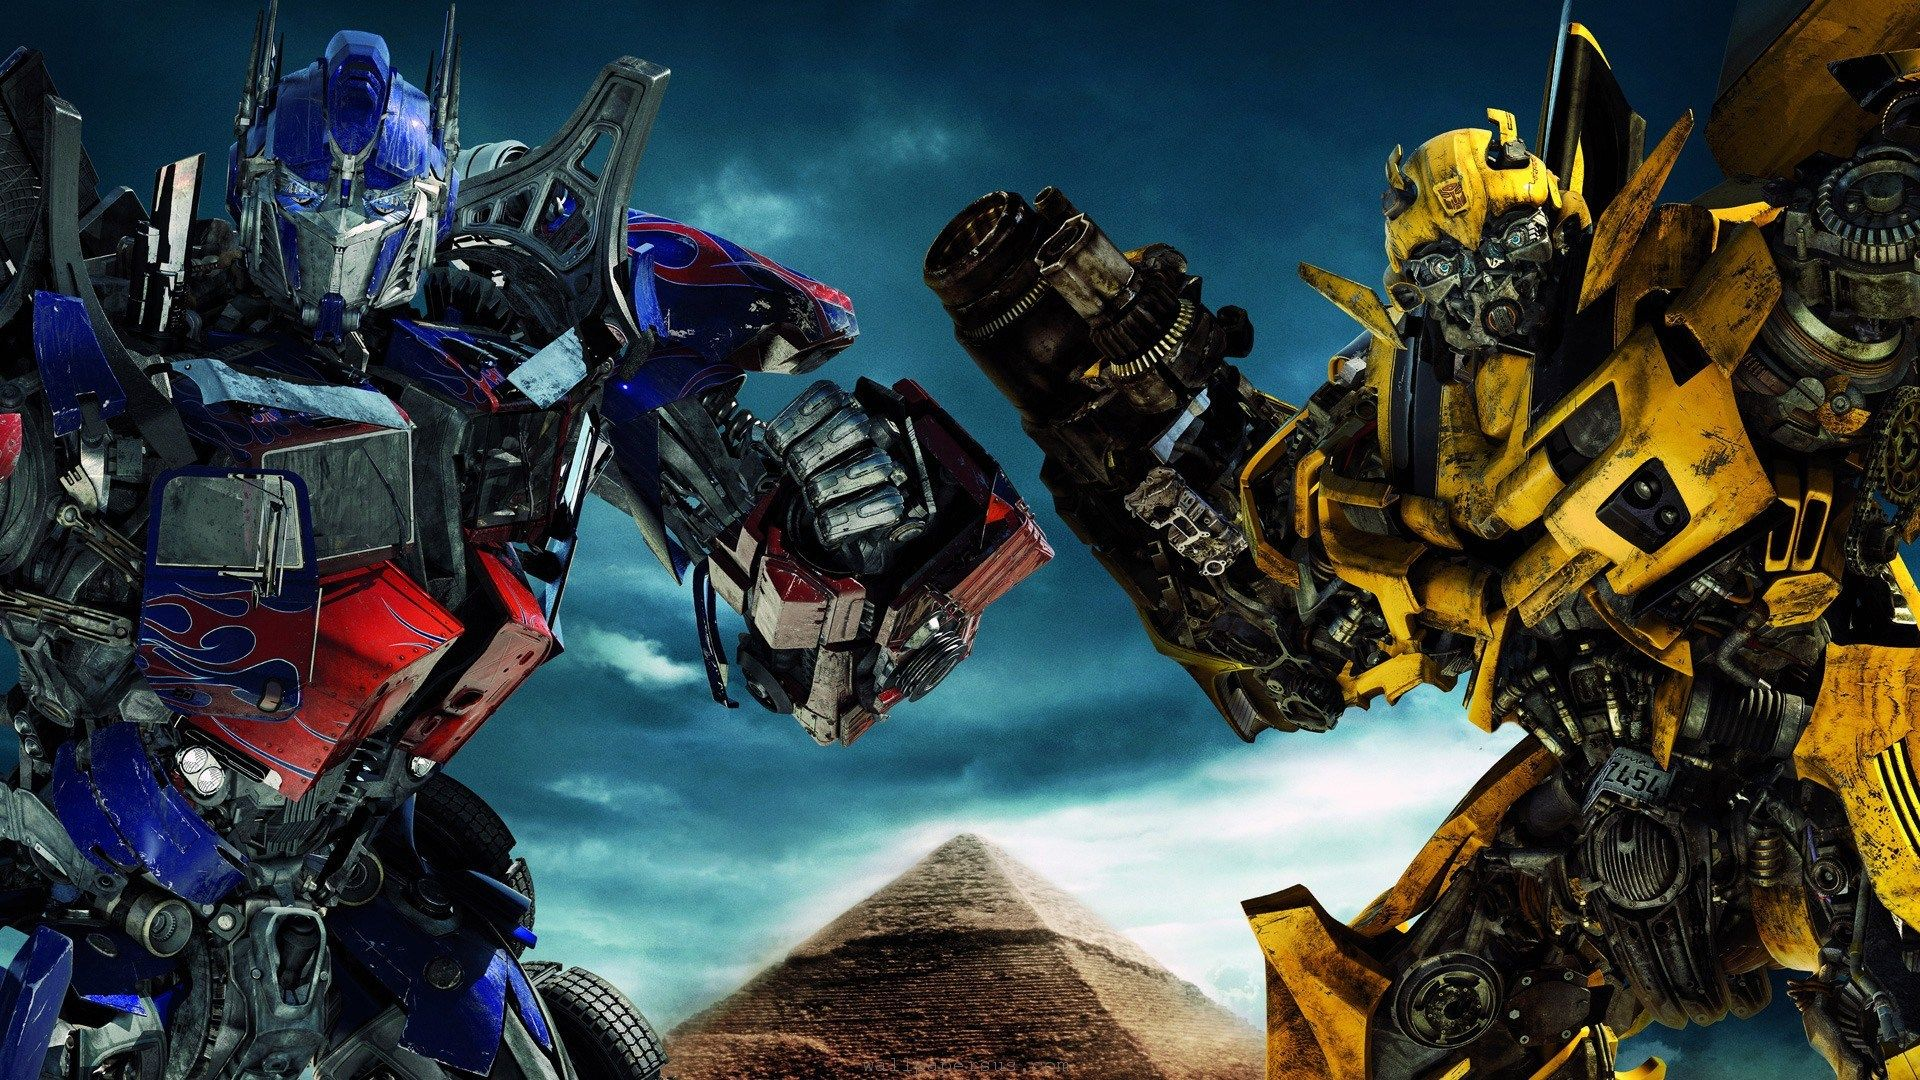 transformers wallpaper for desktop background